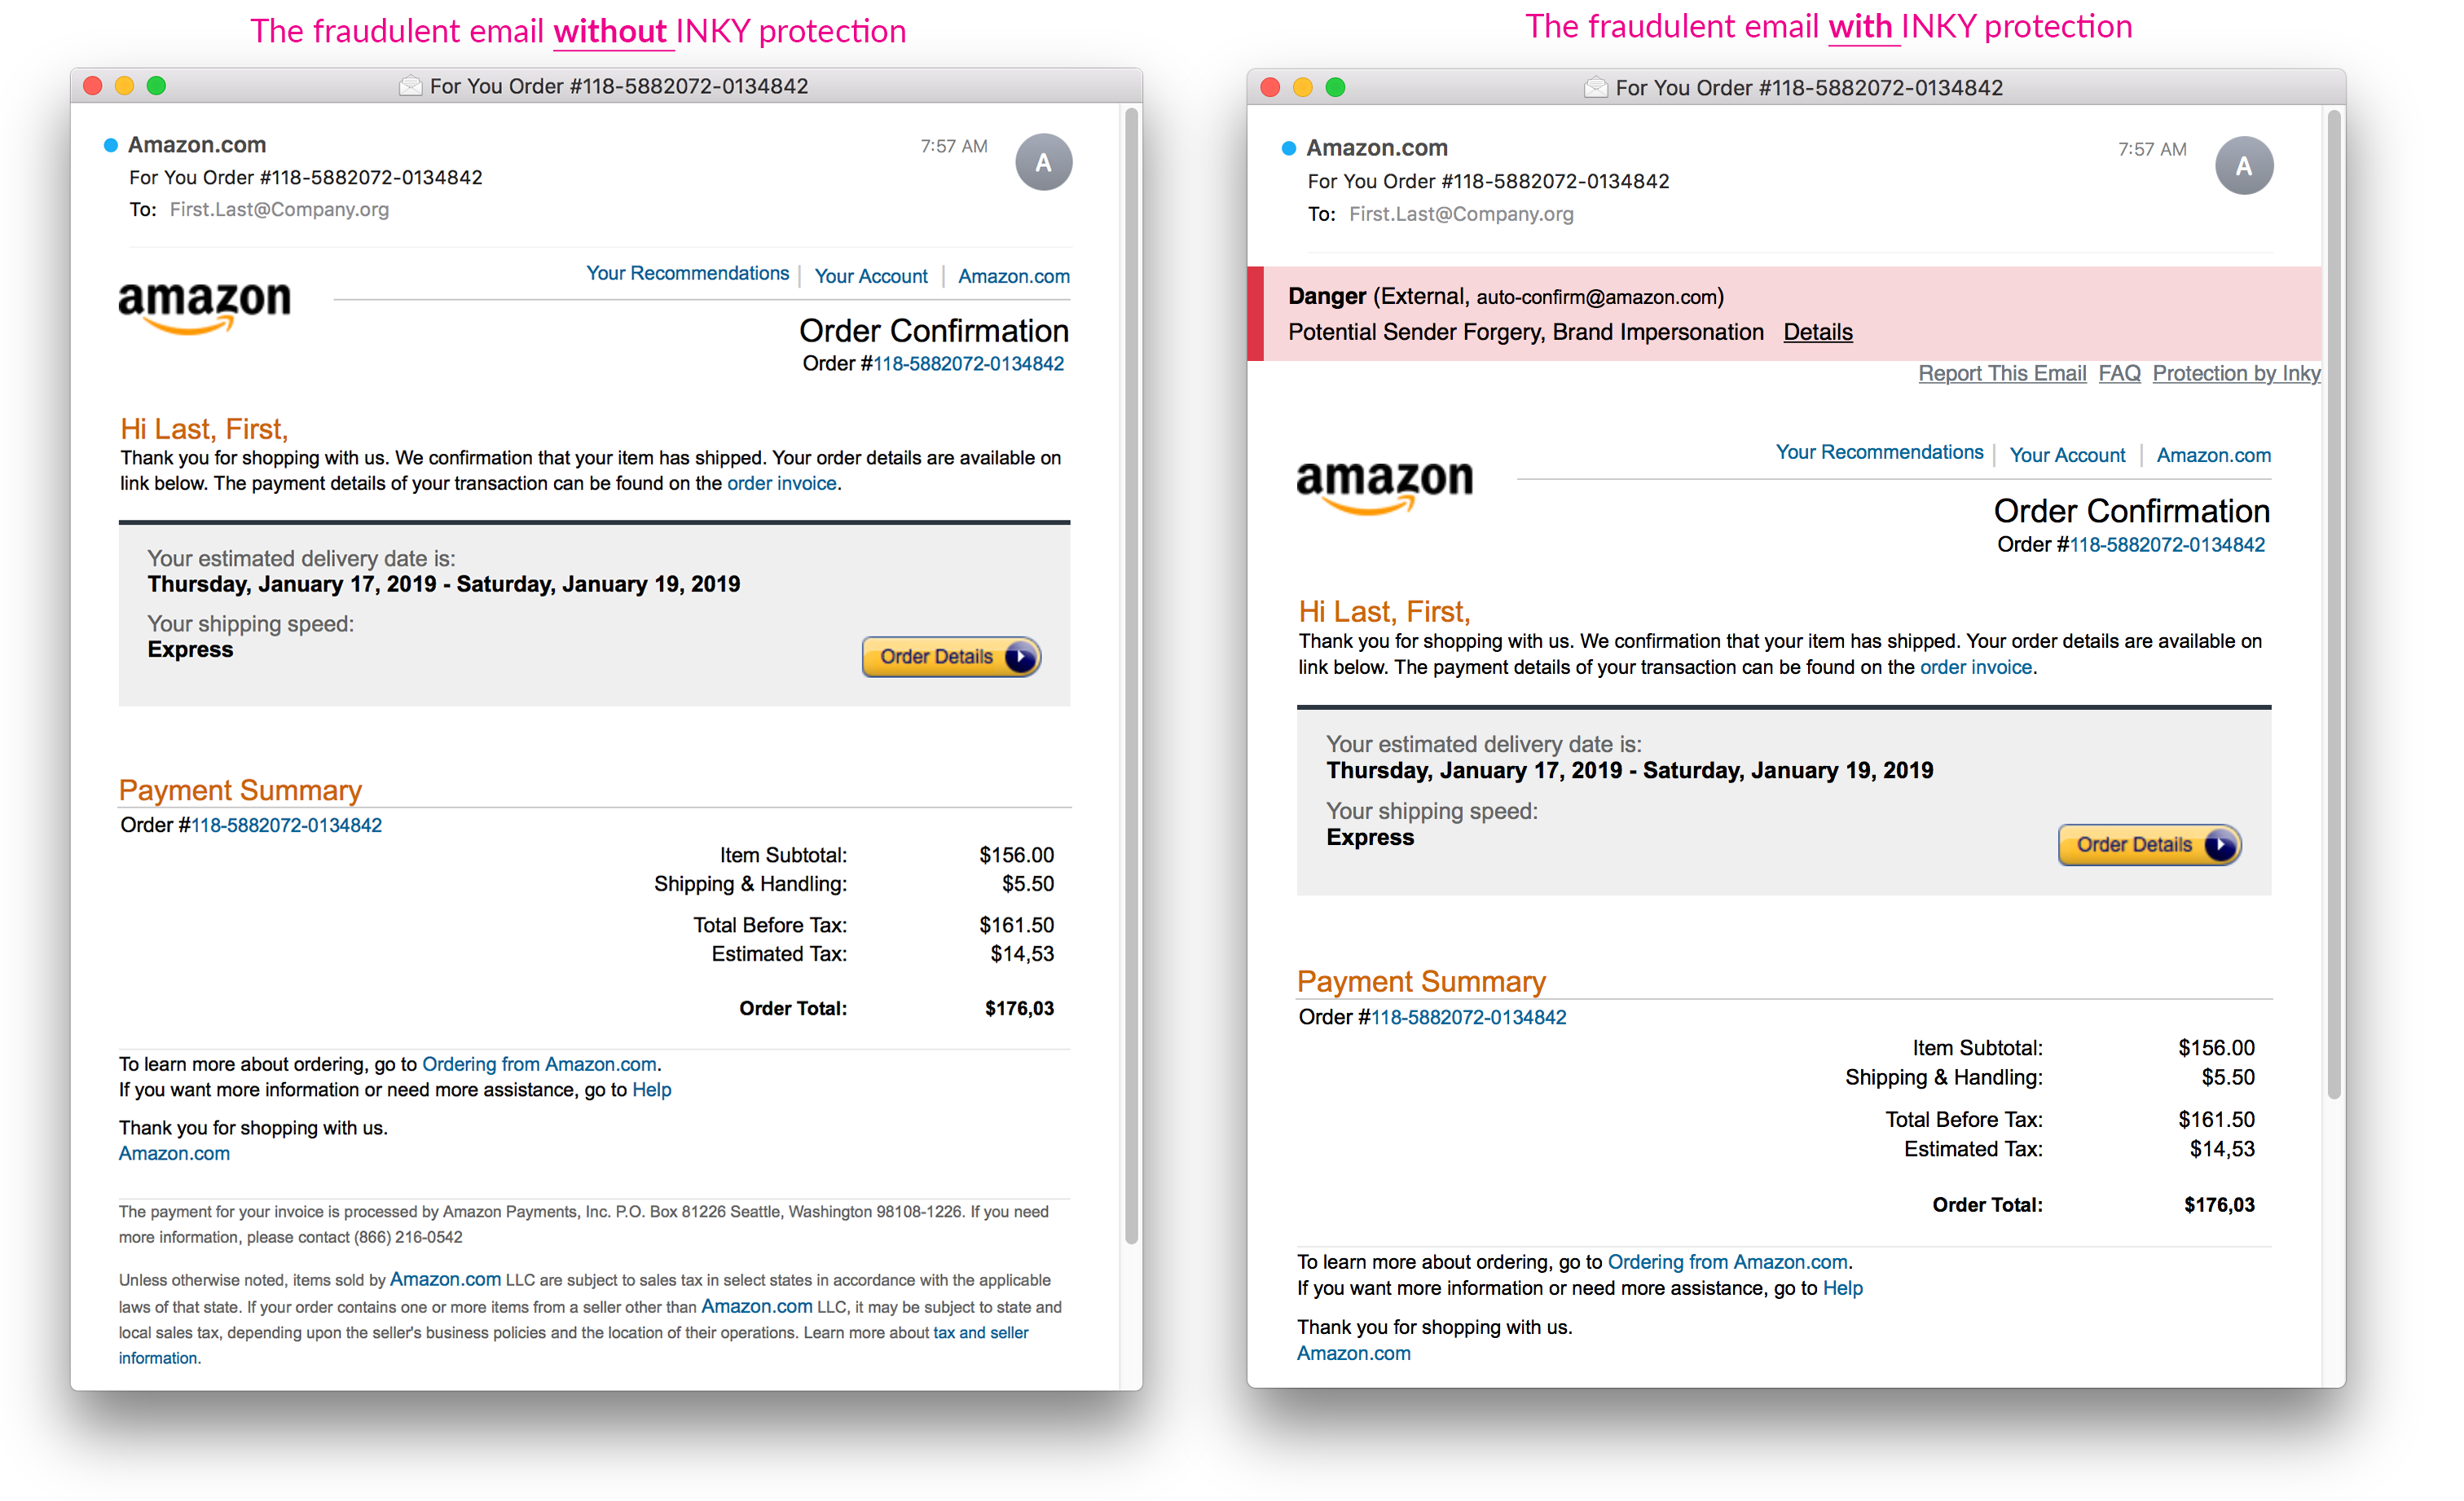 Amazon Impersonation Email INKY 3